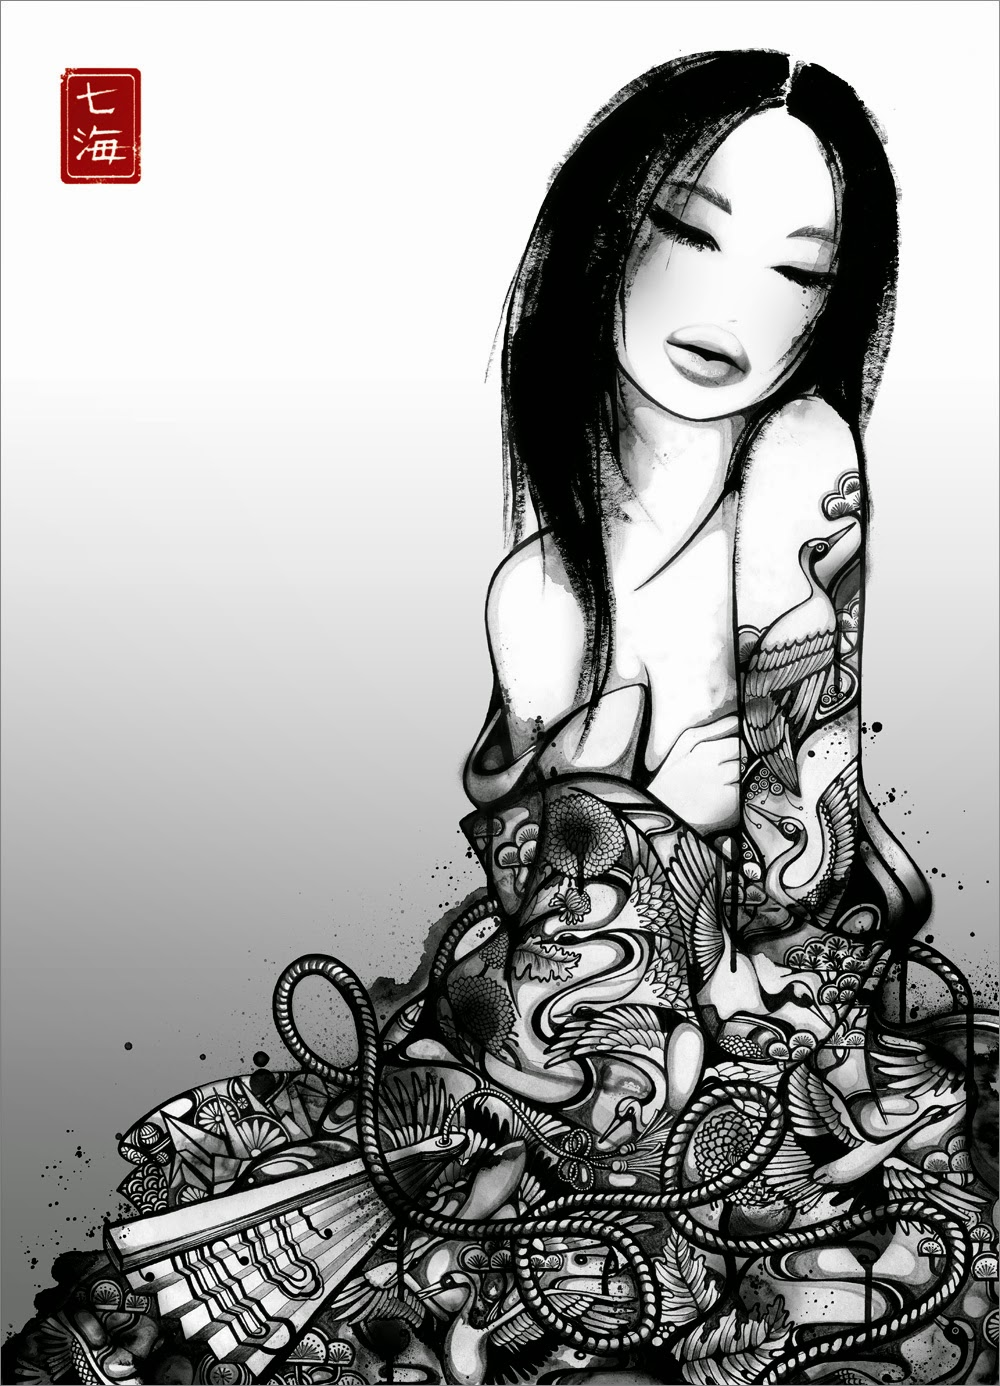 05-Geisha-Yume-Nanami-Cowdroy-Splashes-of-Ink-Drawings-www-designstack-co